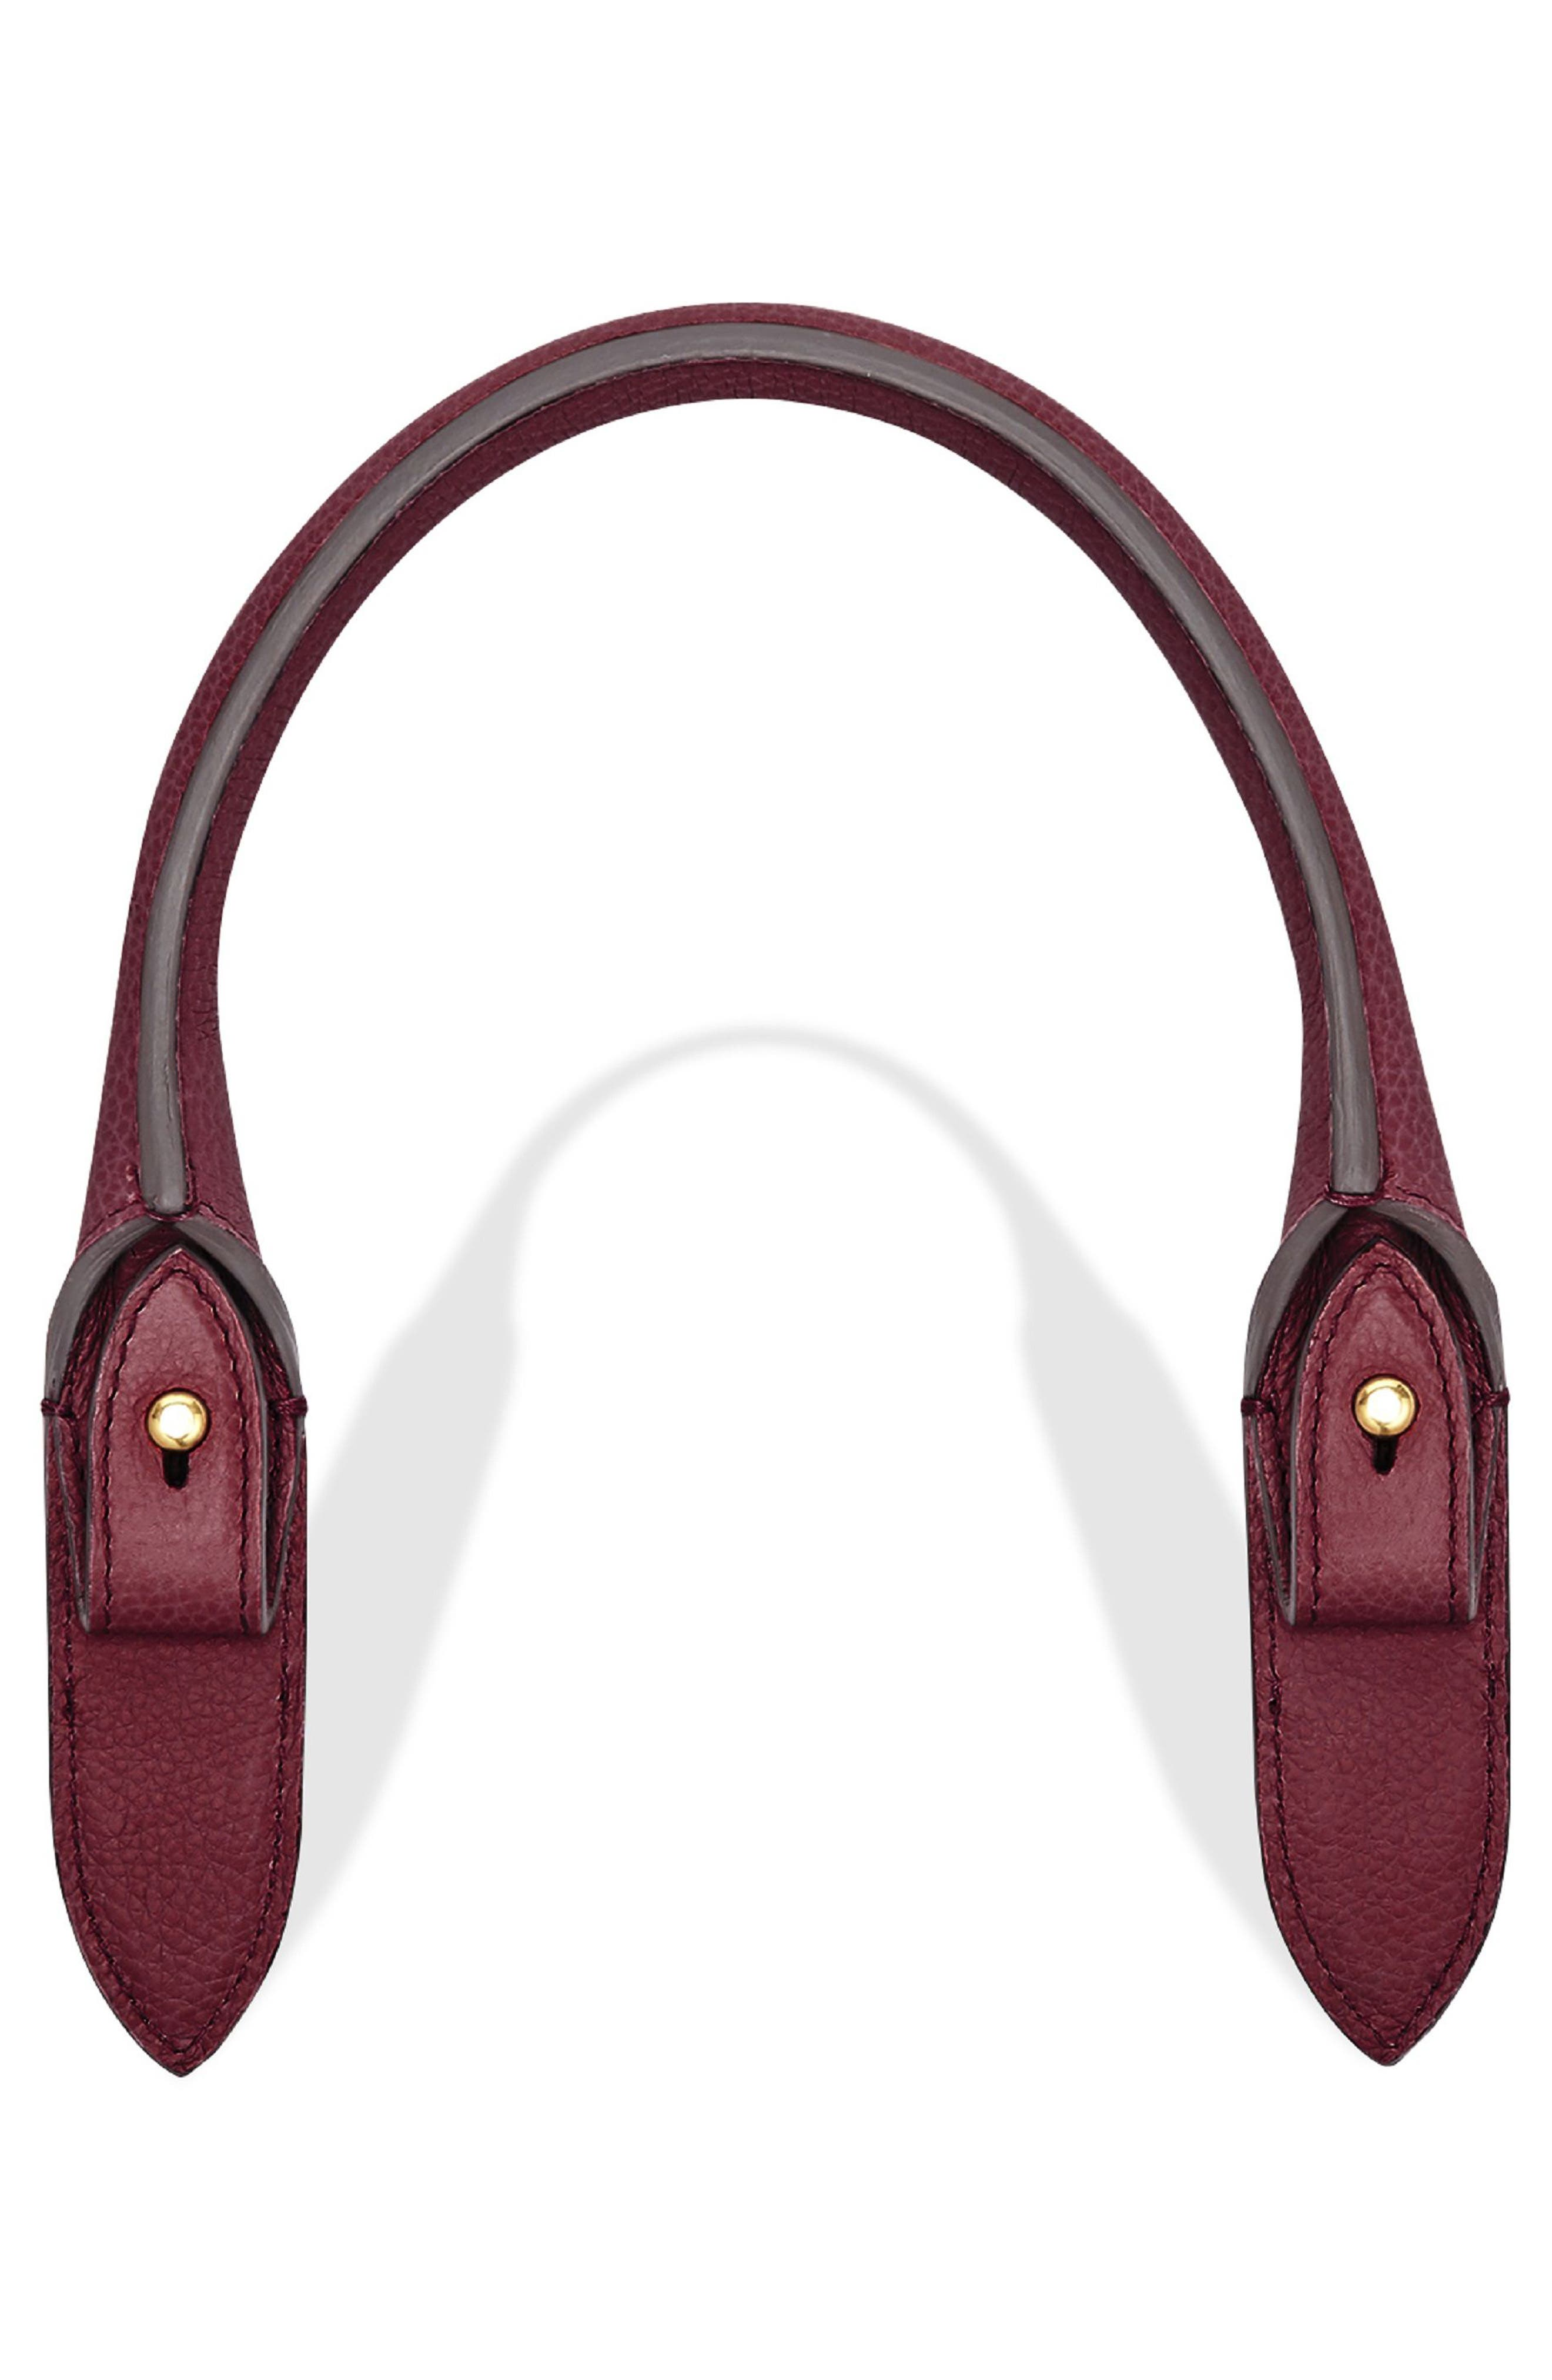 Build a Bag Rolled Leather Handle,                             Alternate thumbnail 2, color,                             Raspberry